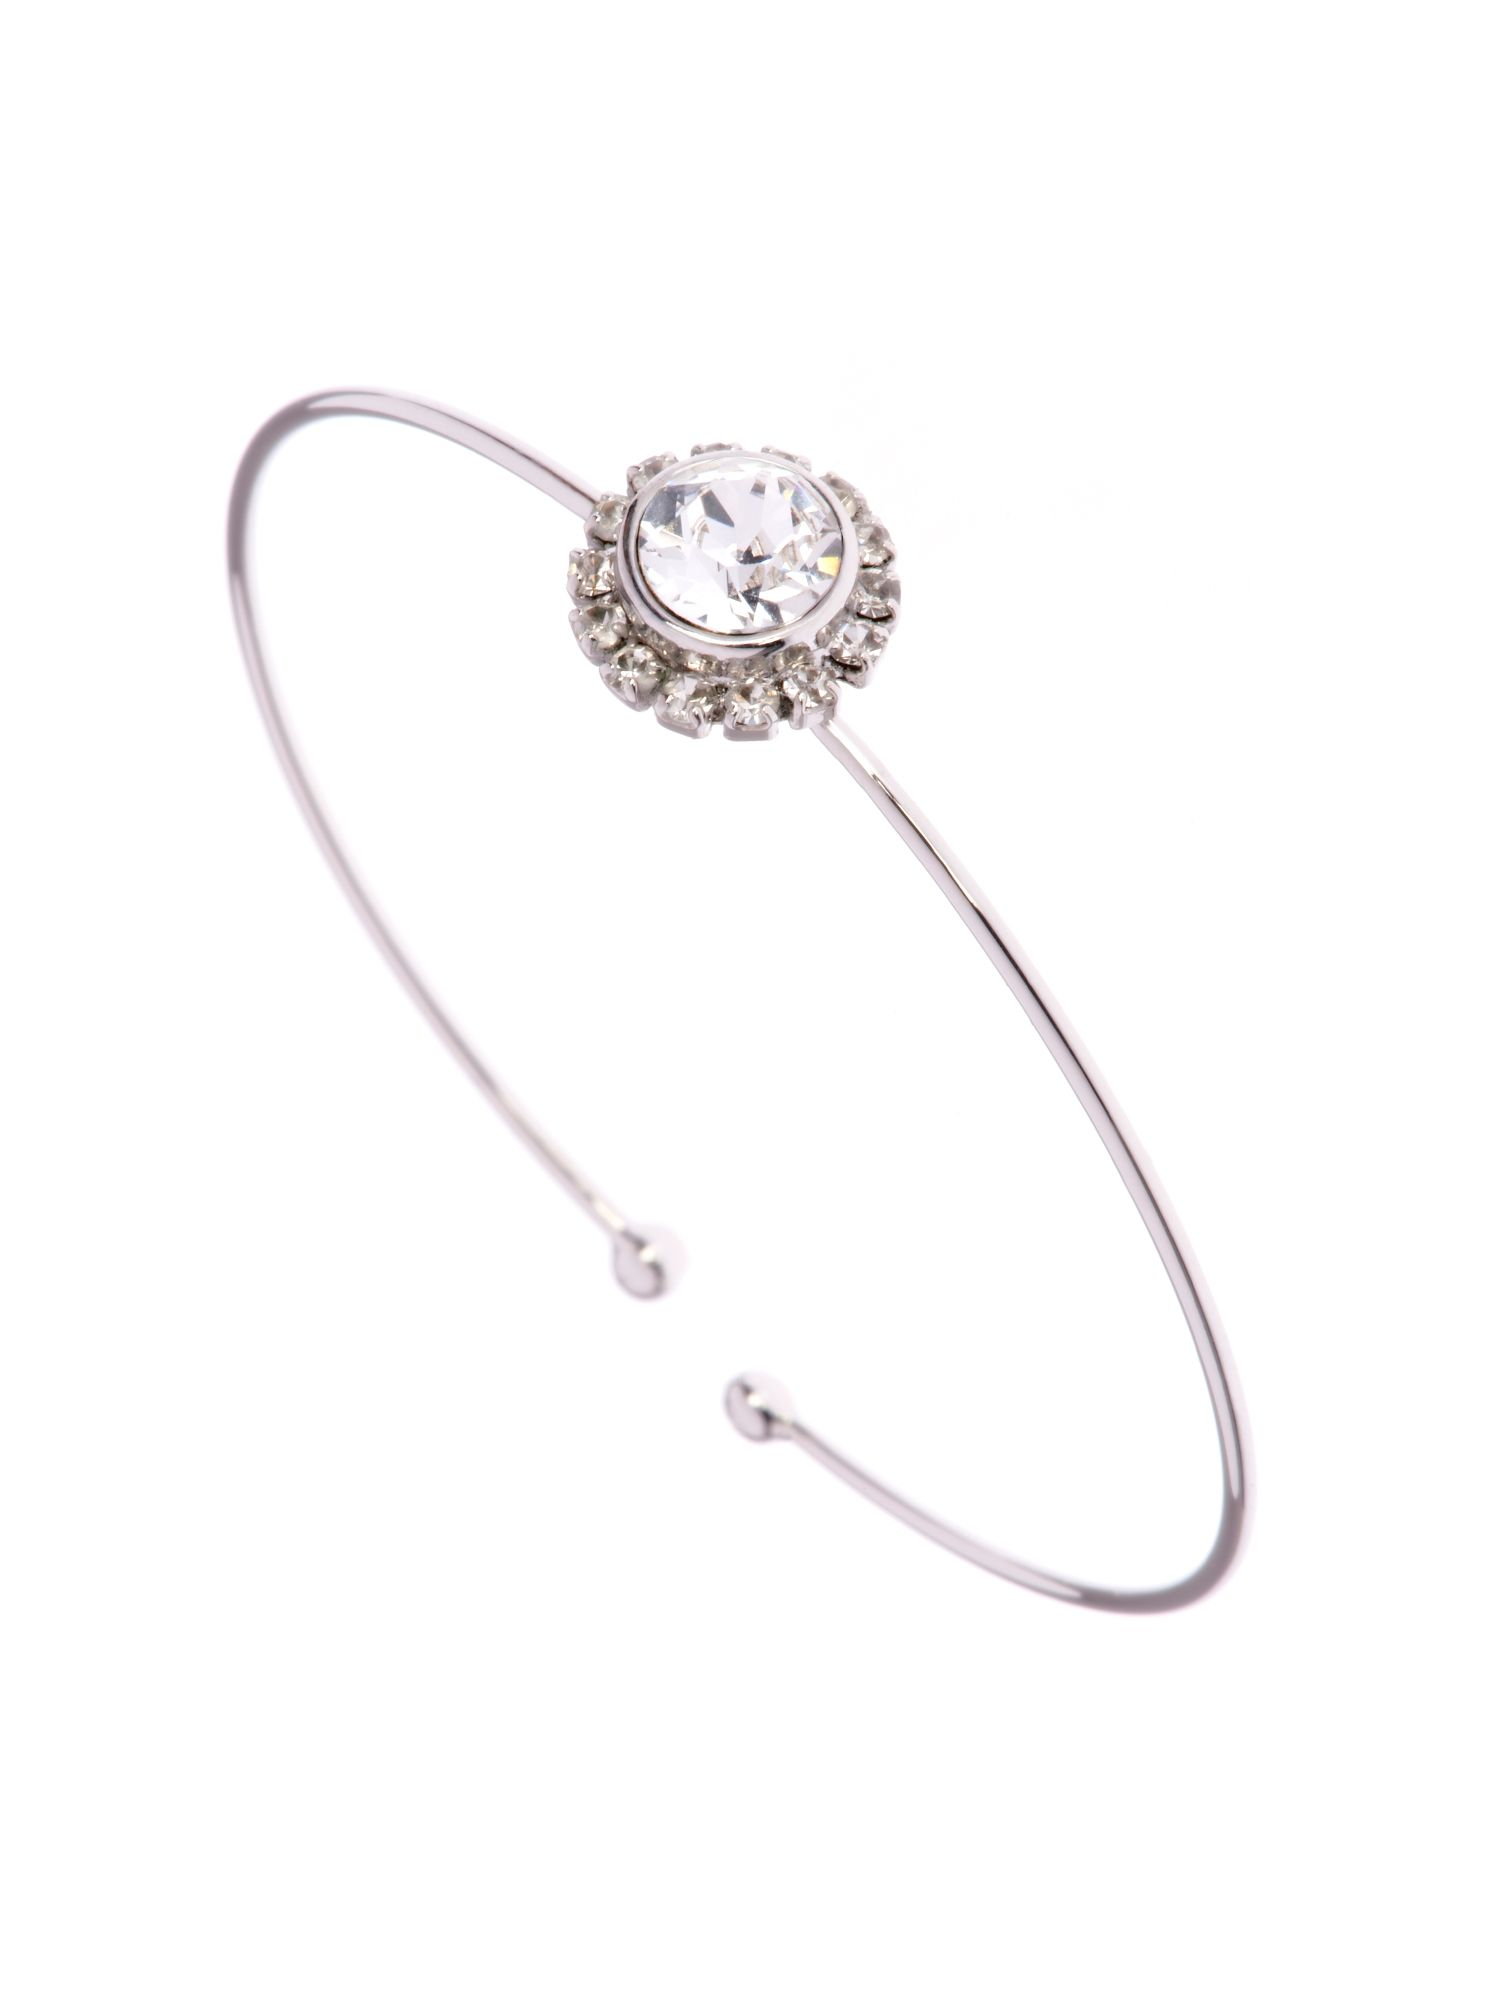 Sapplelle crystal chain ultra fine cuff